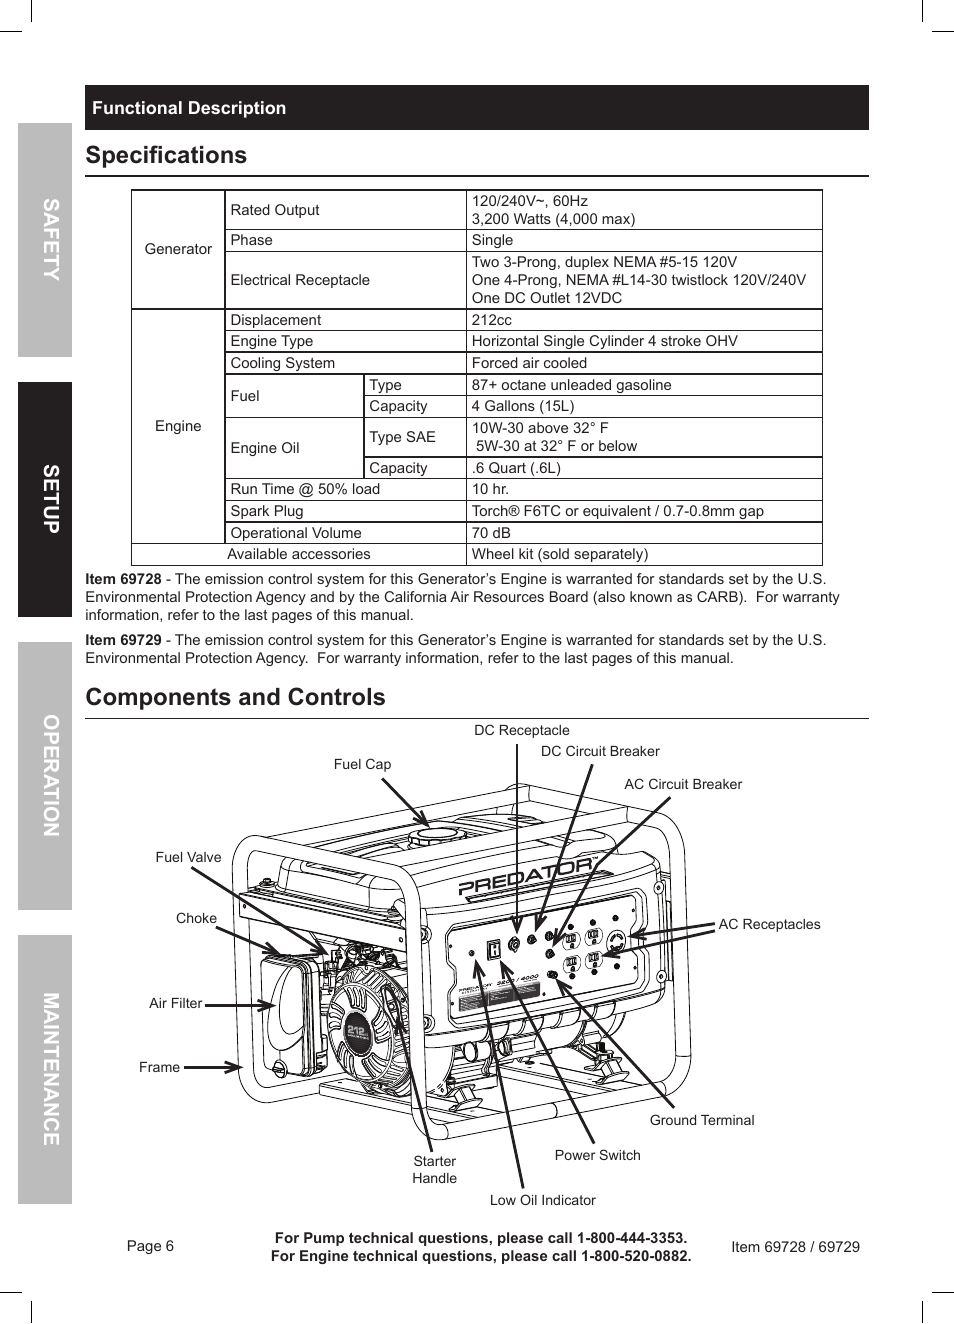 wiring diagram for predator 6500 generator